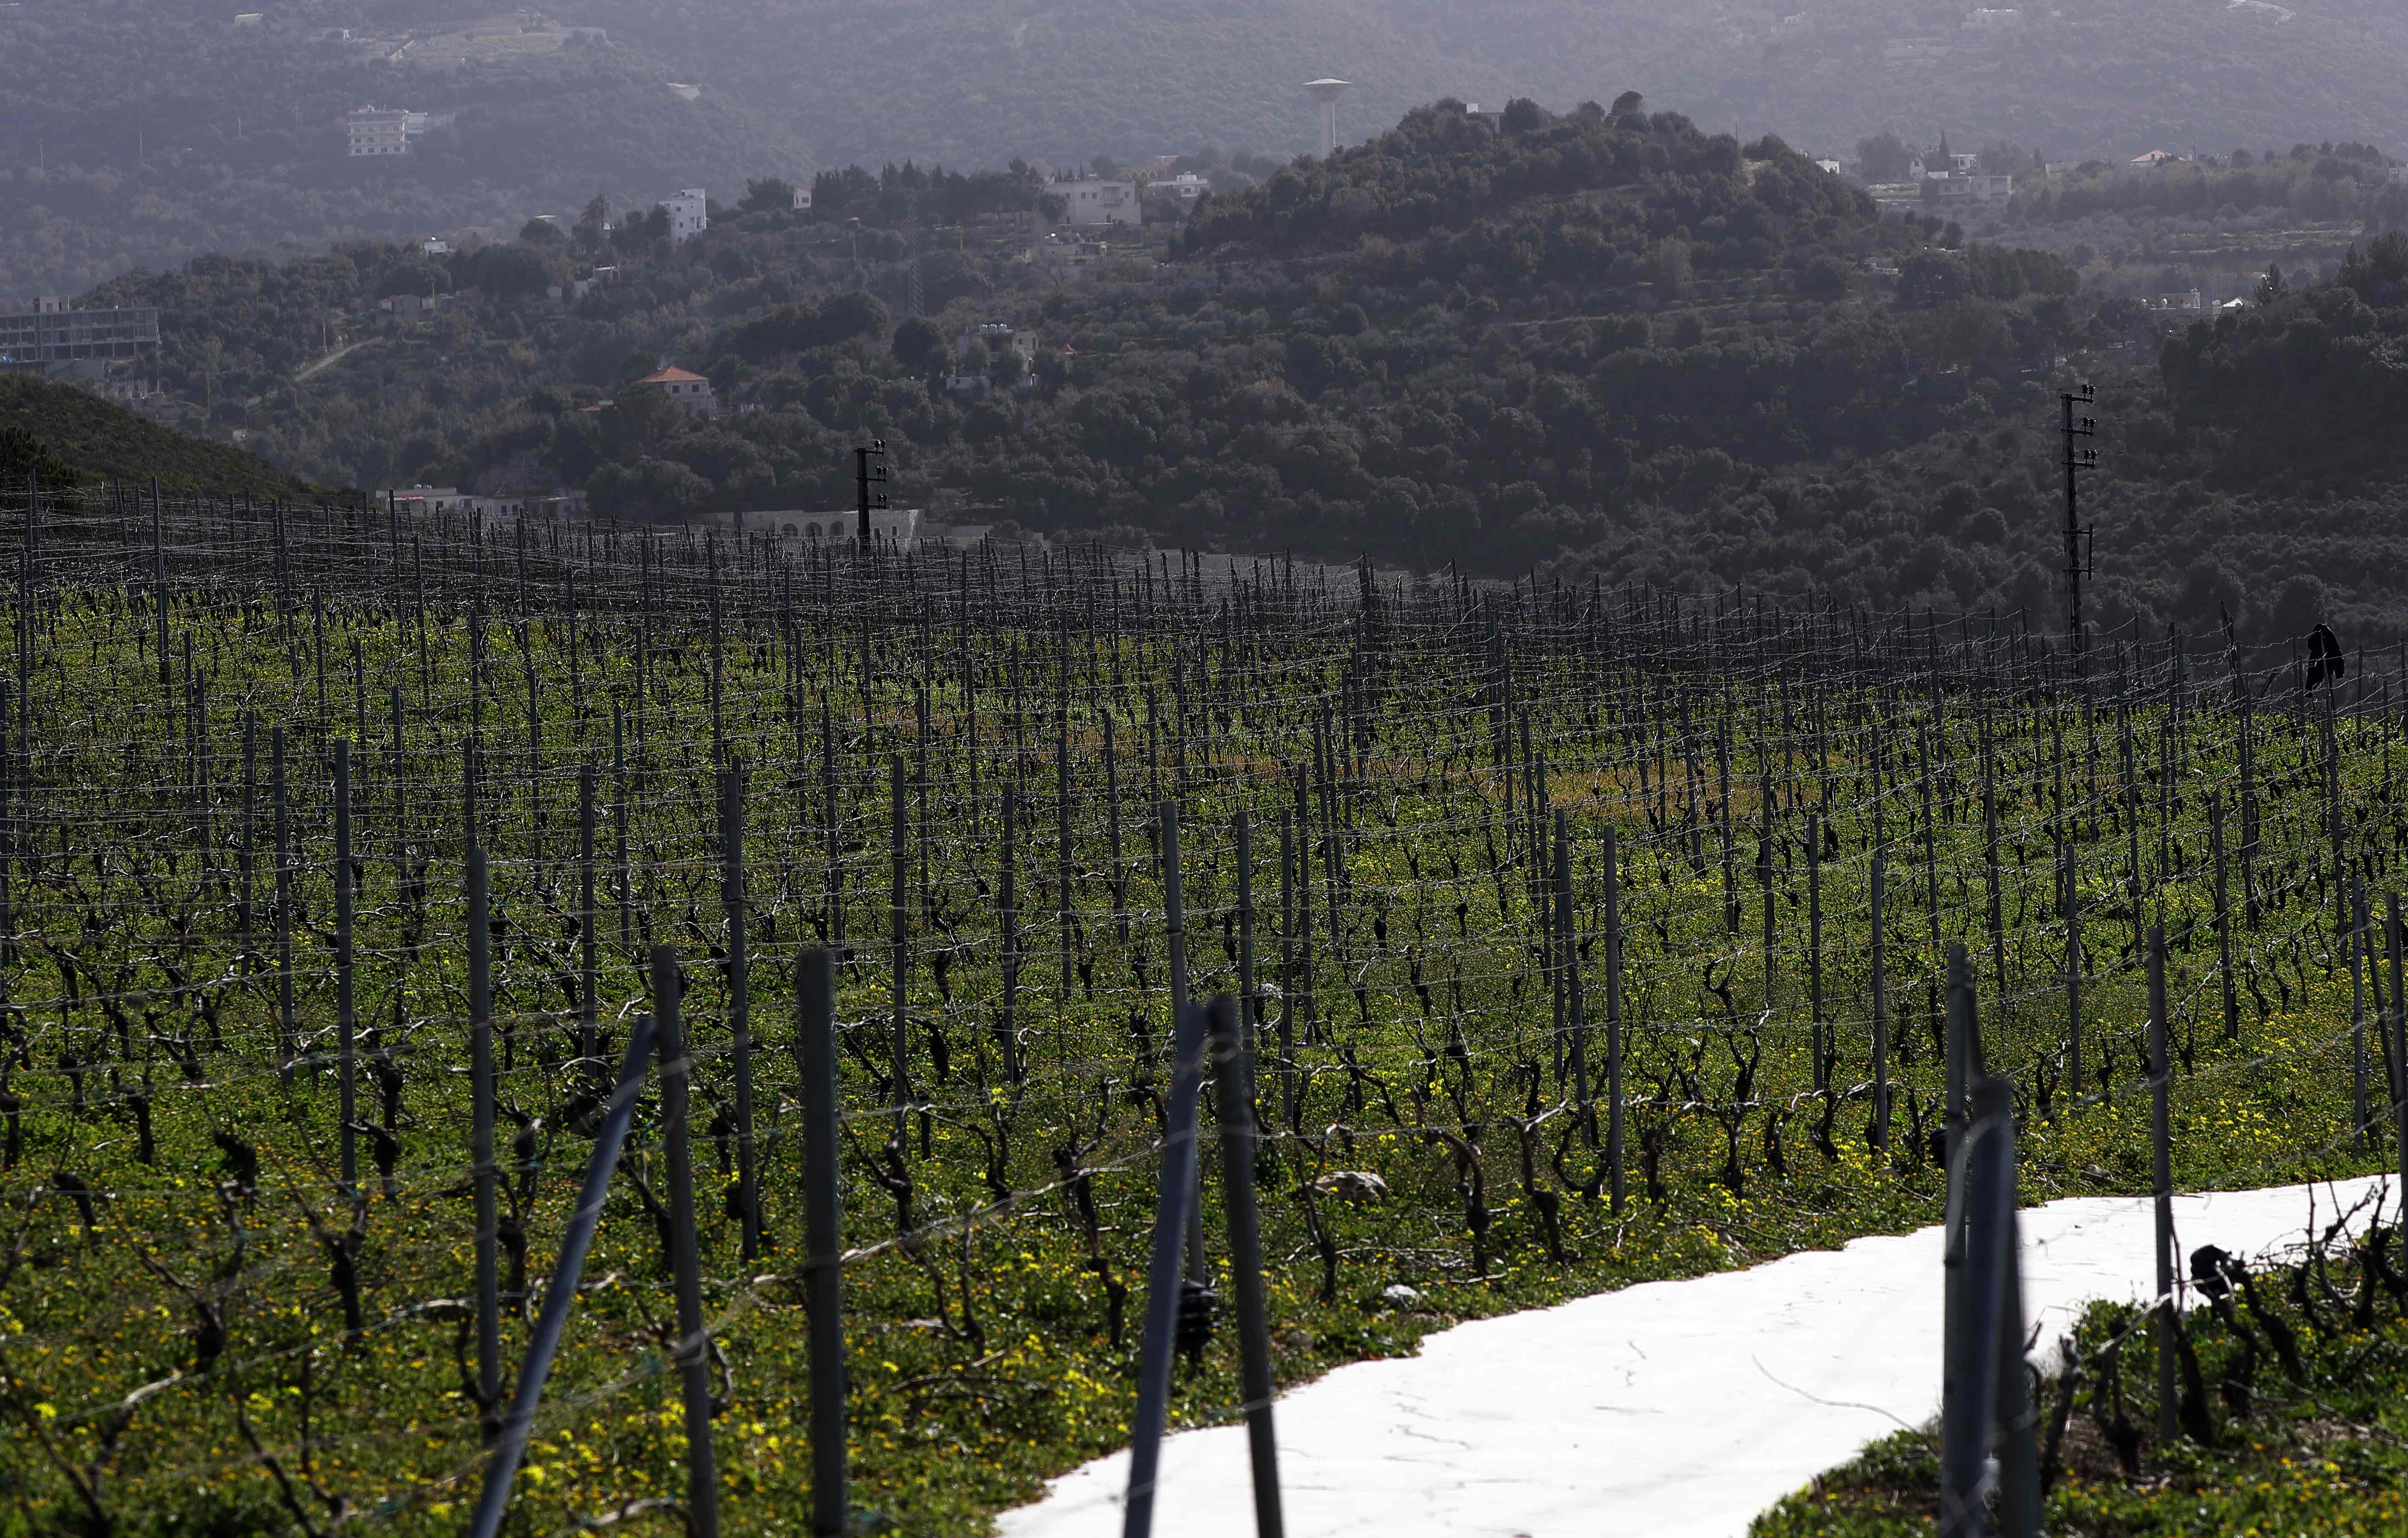 A general view shows the vine terraces of Lebanon's Ixsir winery, co-founded by the detained businessman of Lebanese origin Carlos Ghosn, in an agricultural region above the coastal town of Batroun, north of the Lebanese capital Beirut, on January 25, 2019.